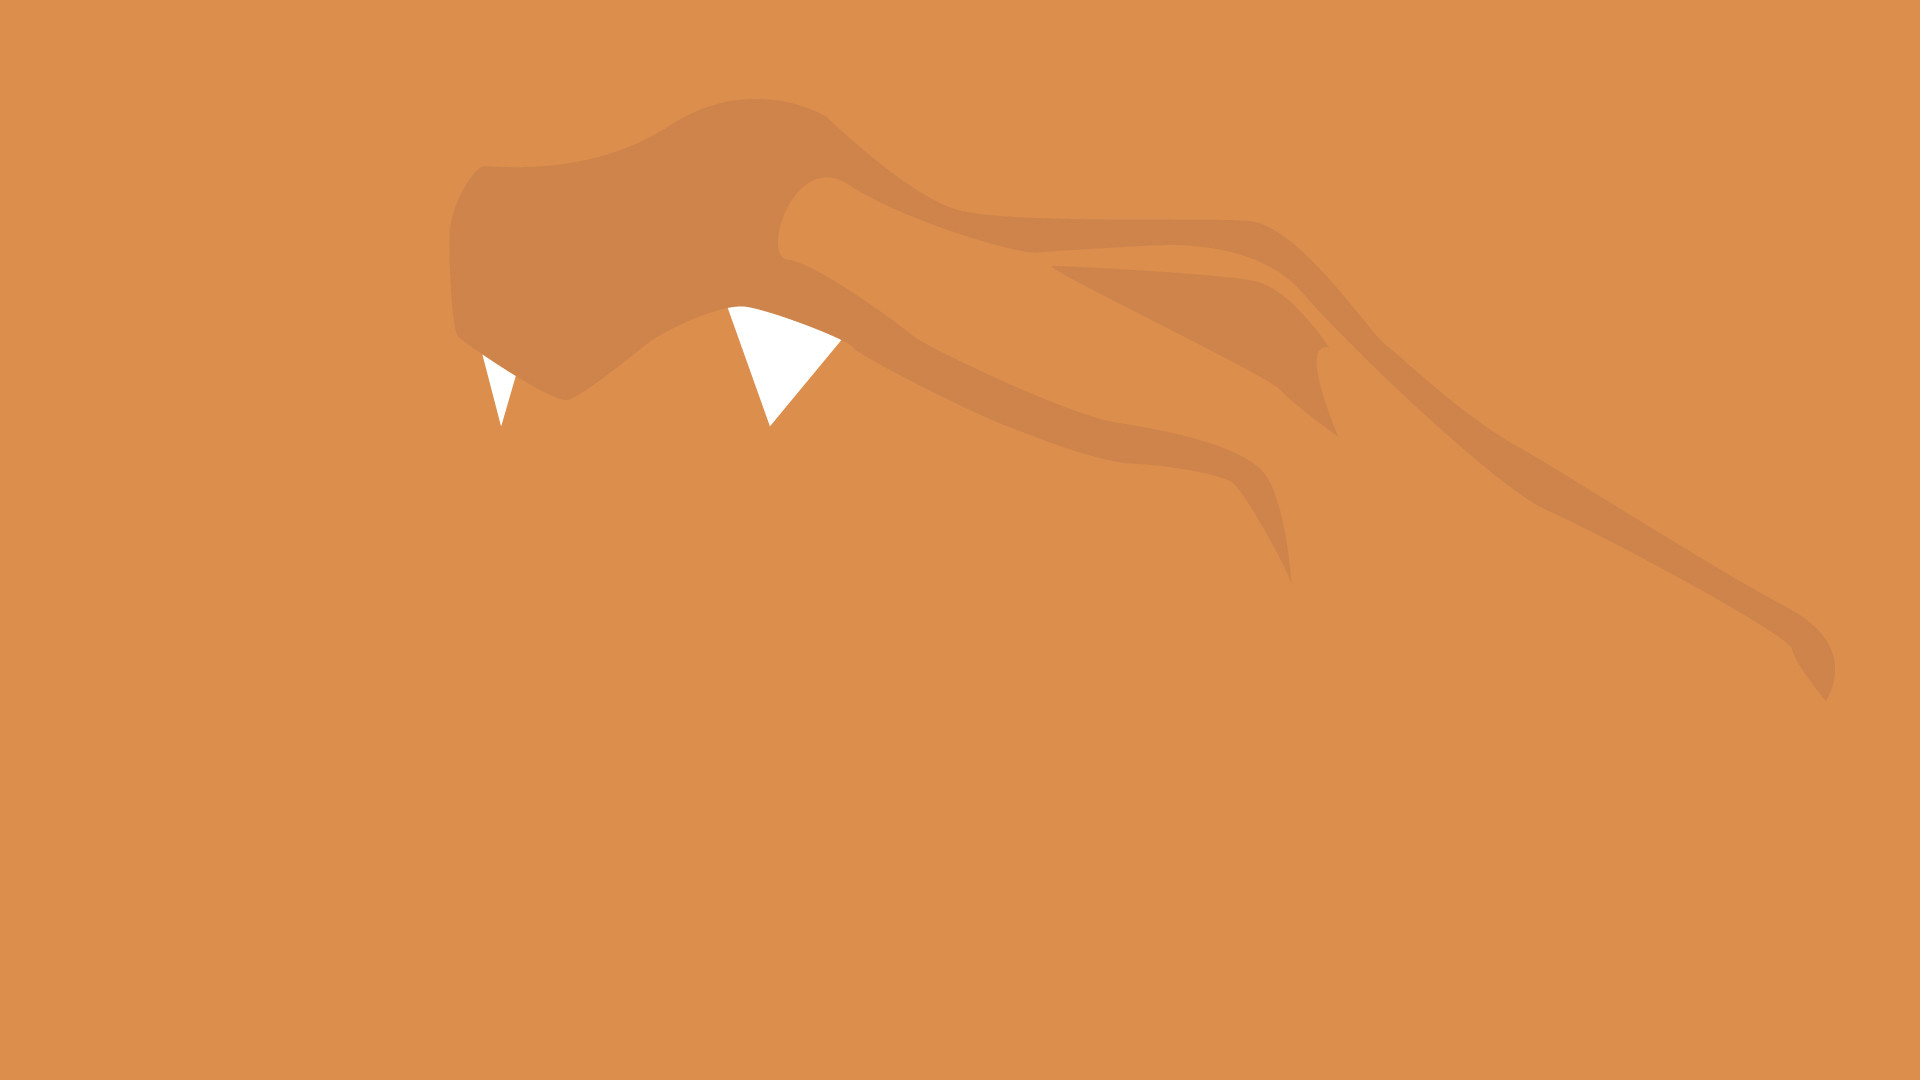 Res: 1920x1080, Check Out These Beautifully Minimalist Wallpapers of Every Pokémon